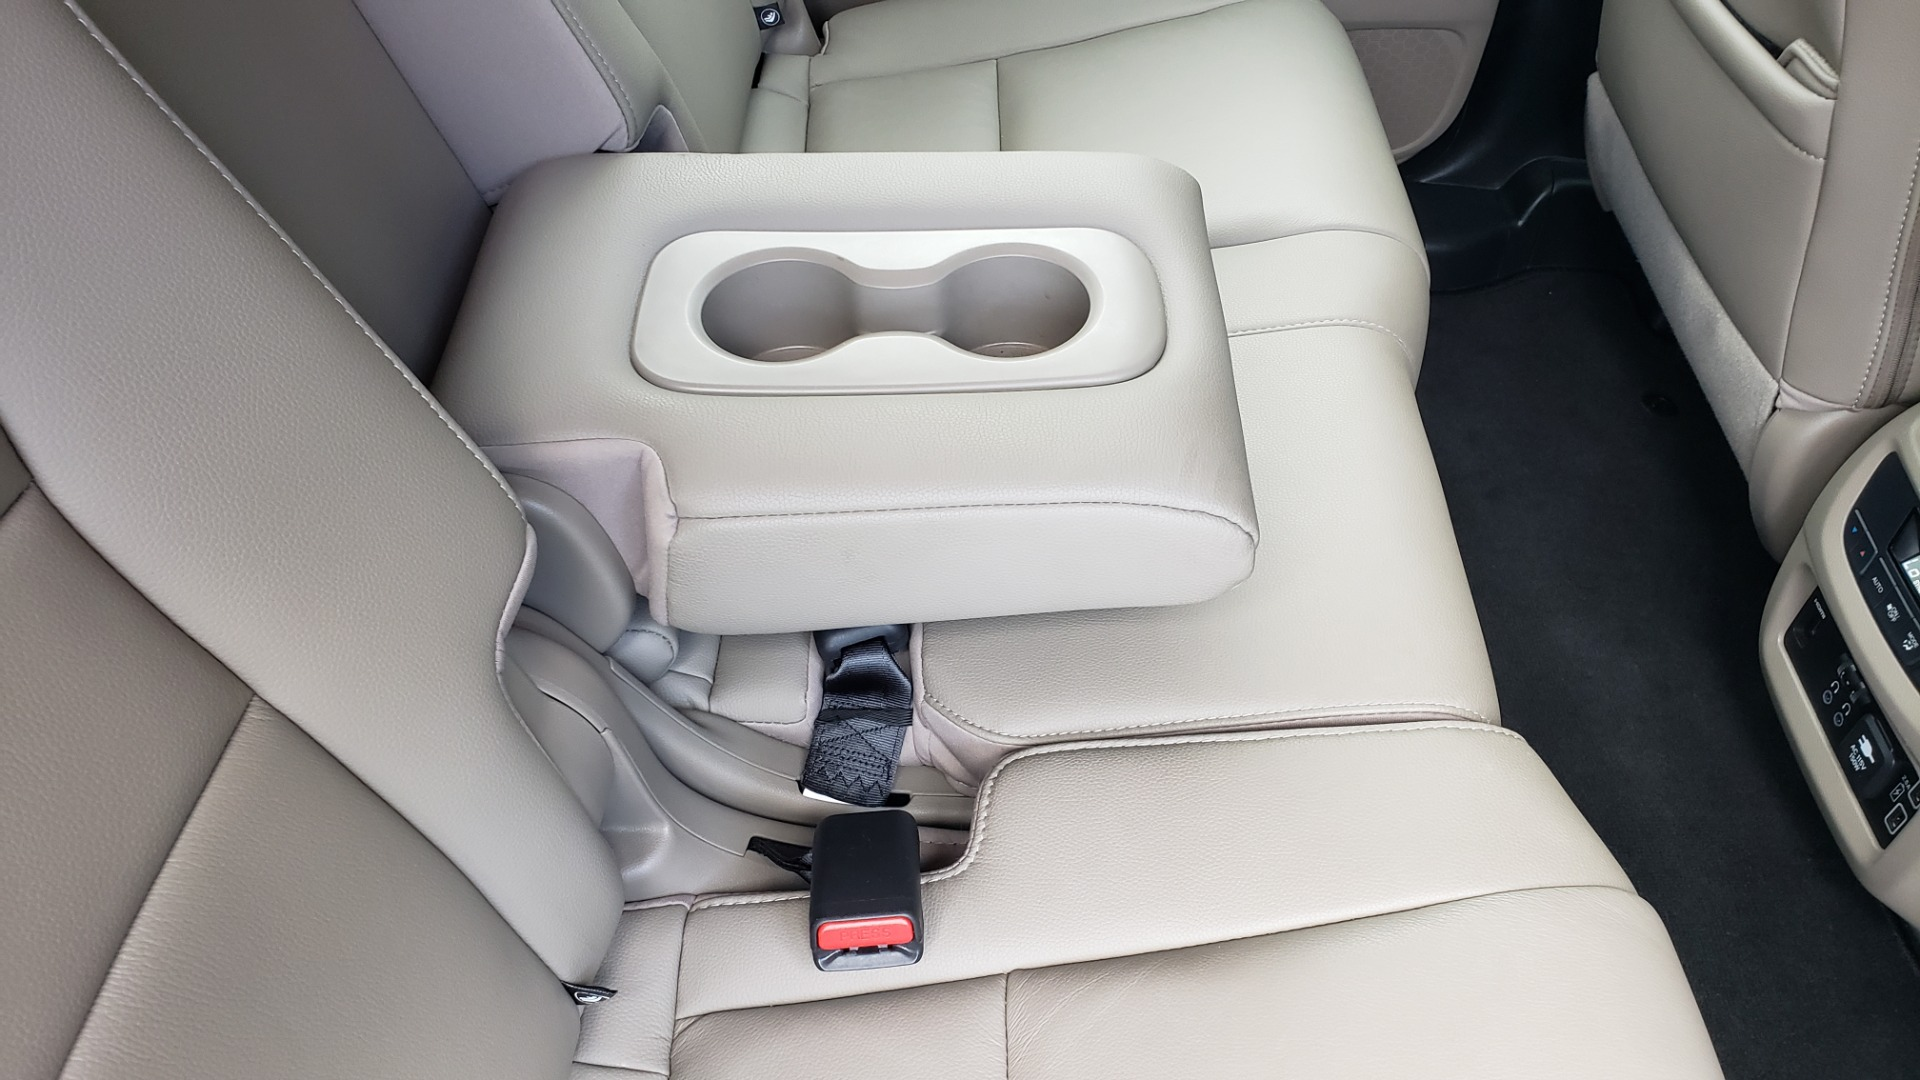 Used 2019 Honda PILOT EX-L / V6 / NAV / SUNROOF / DVD / 3-ROW / REARVIEW for sale Sold at Formula Imports in Charlotte NC 28227 80